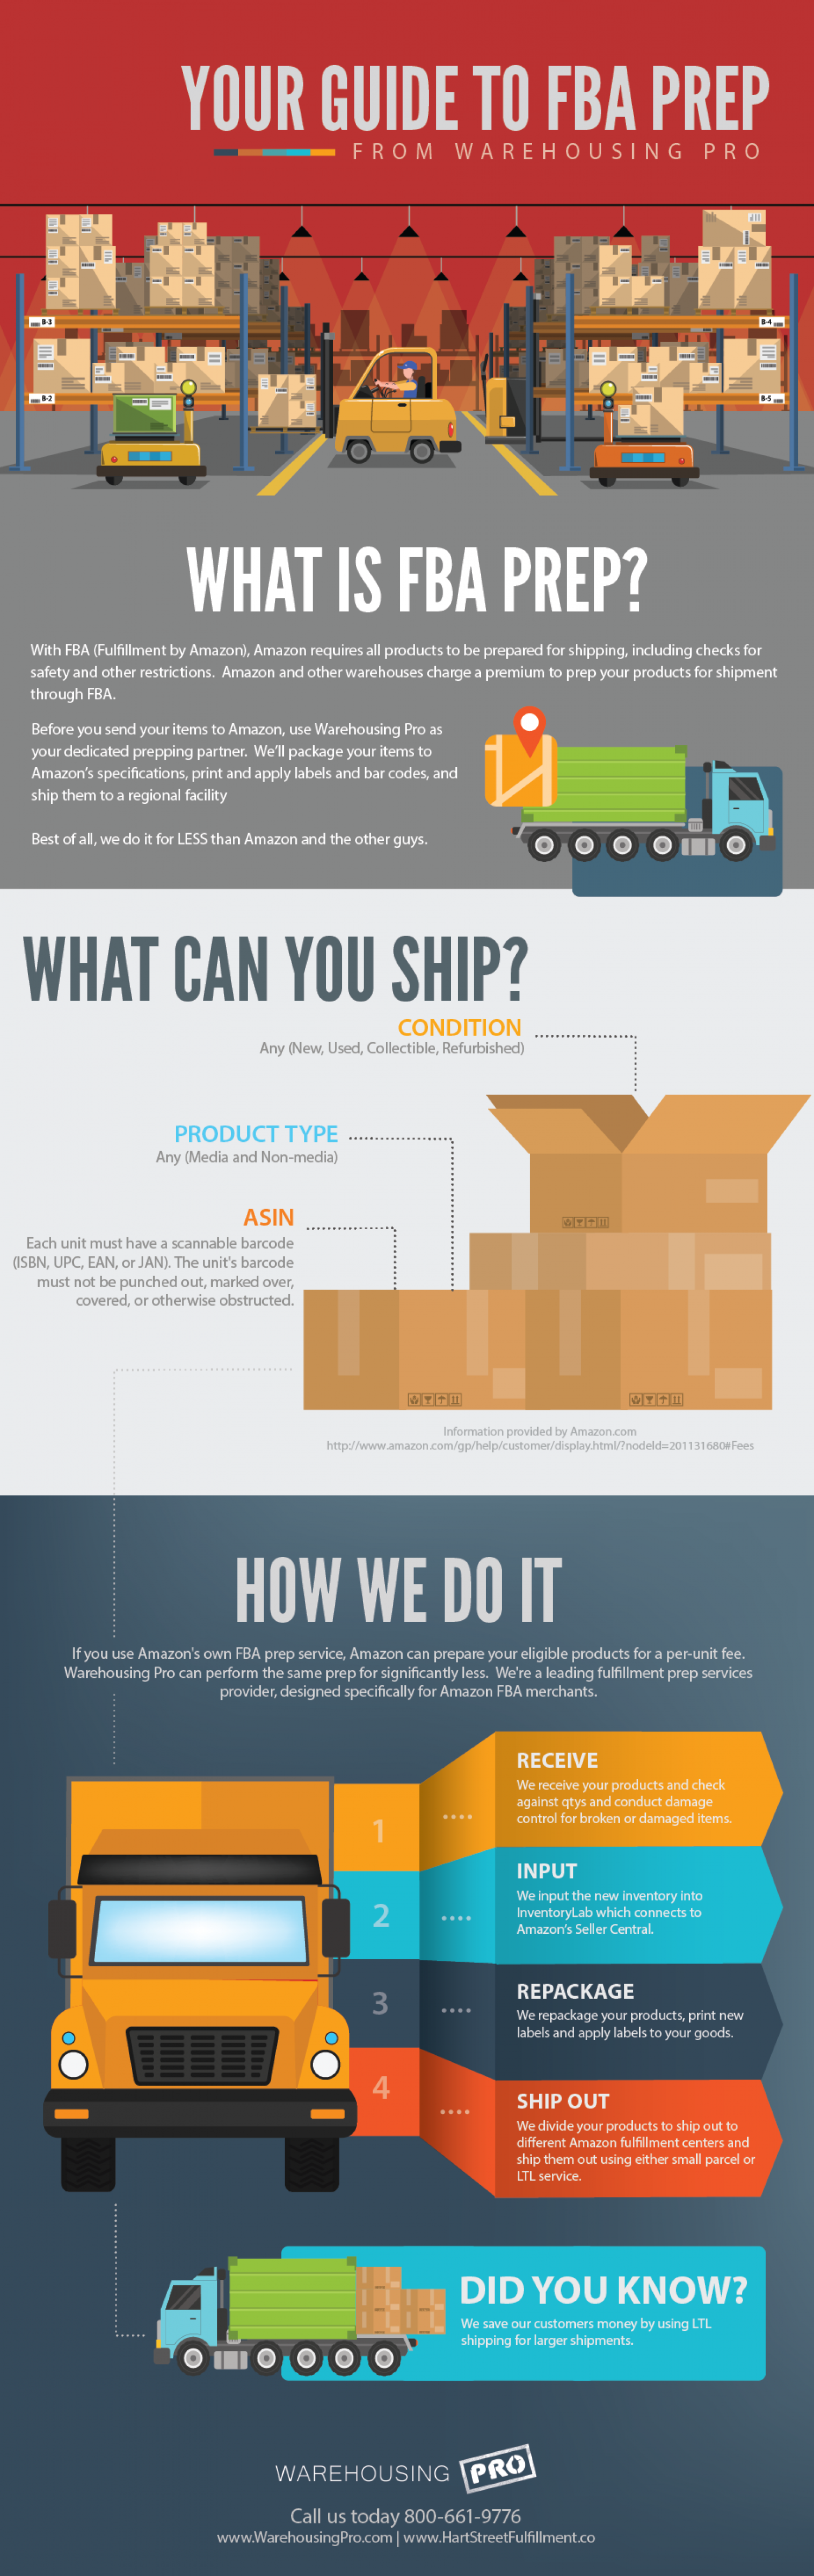 Your Guide to FBA Prep From Warehousing Pro  Infographic